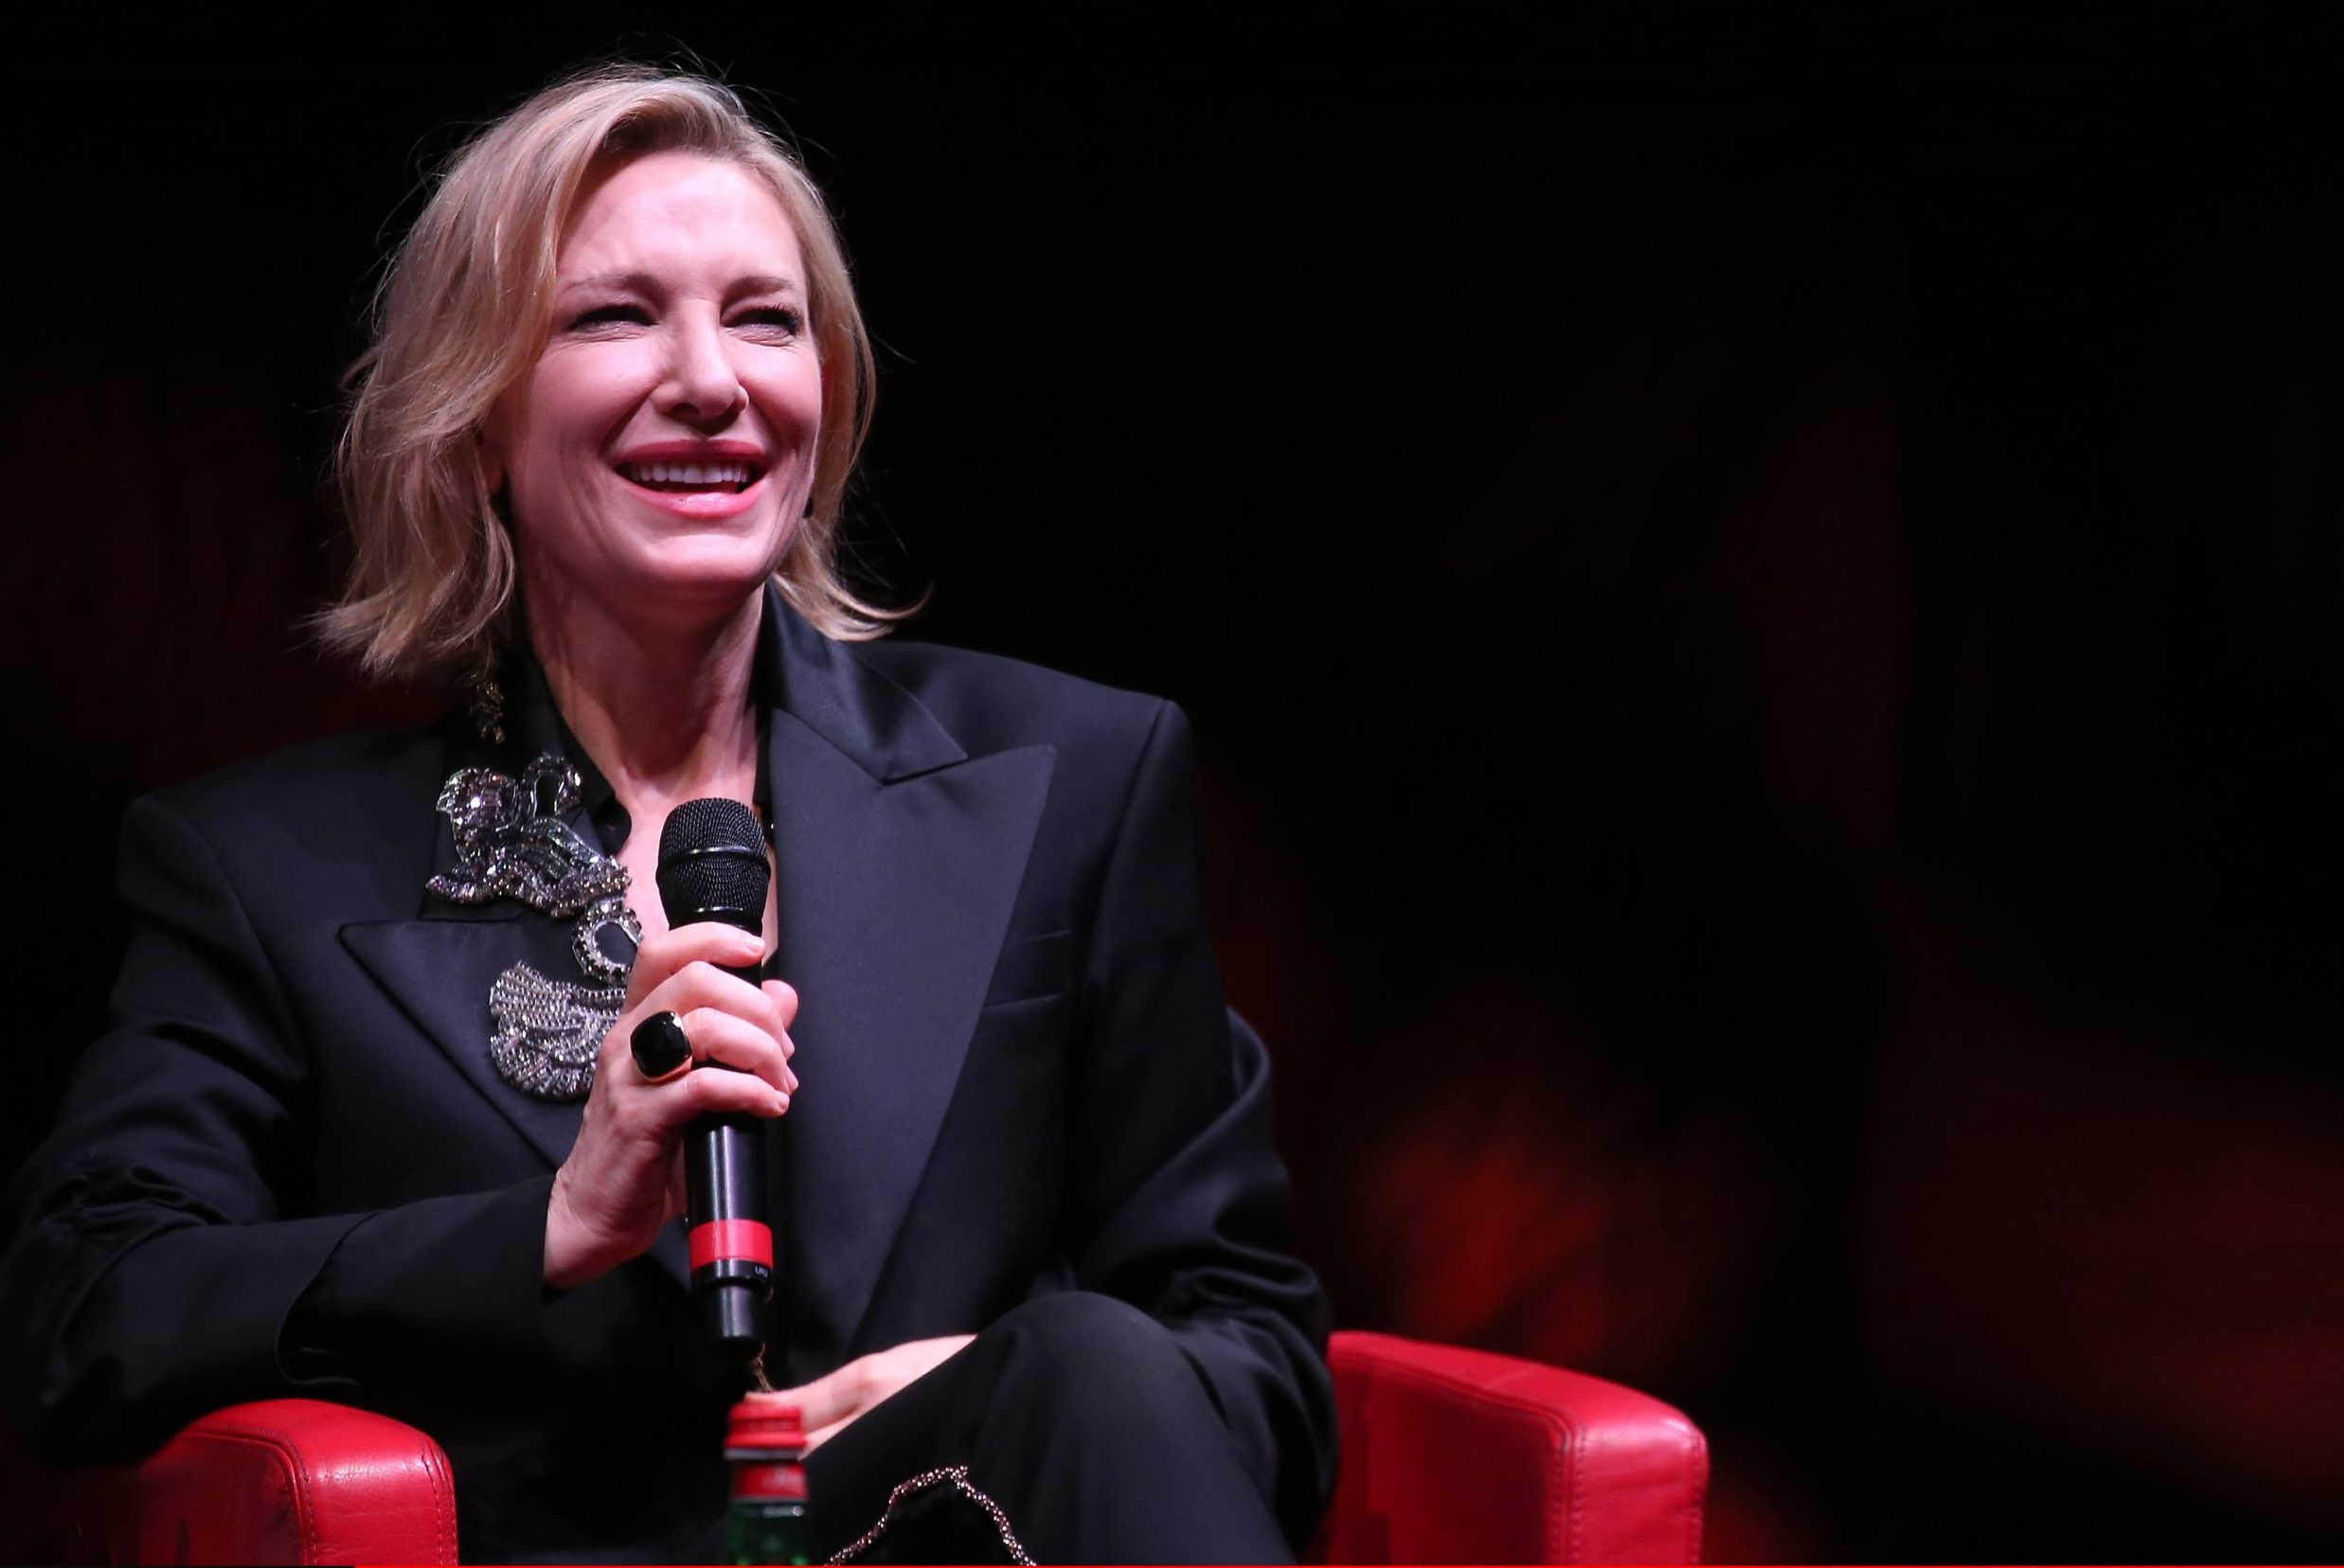 Cate Blanchett defends straight actors playing LGBT roles in Hollywood: 'I will fight to the death'